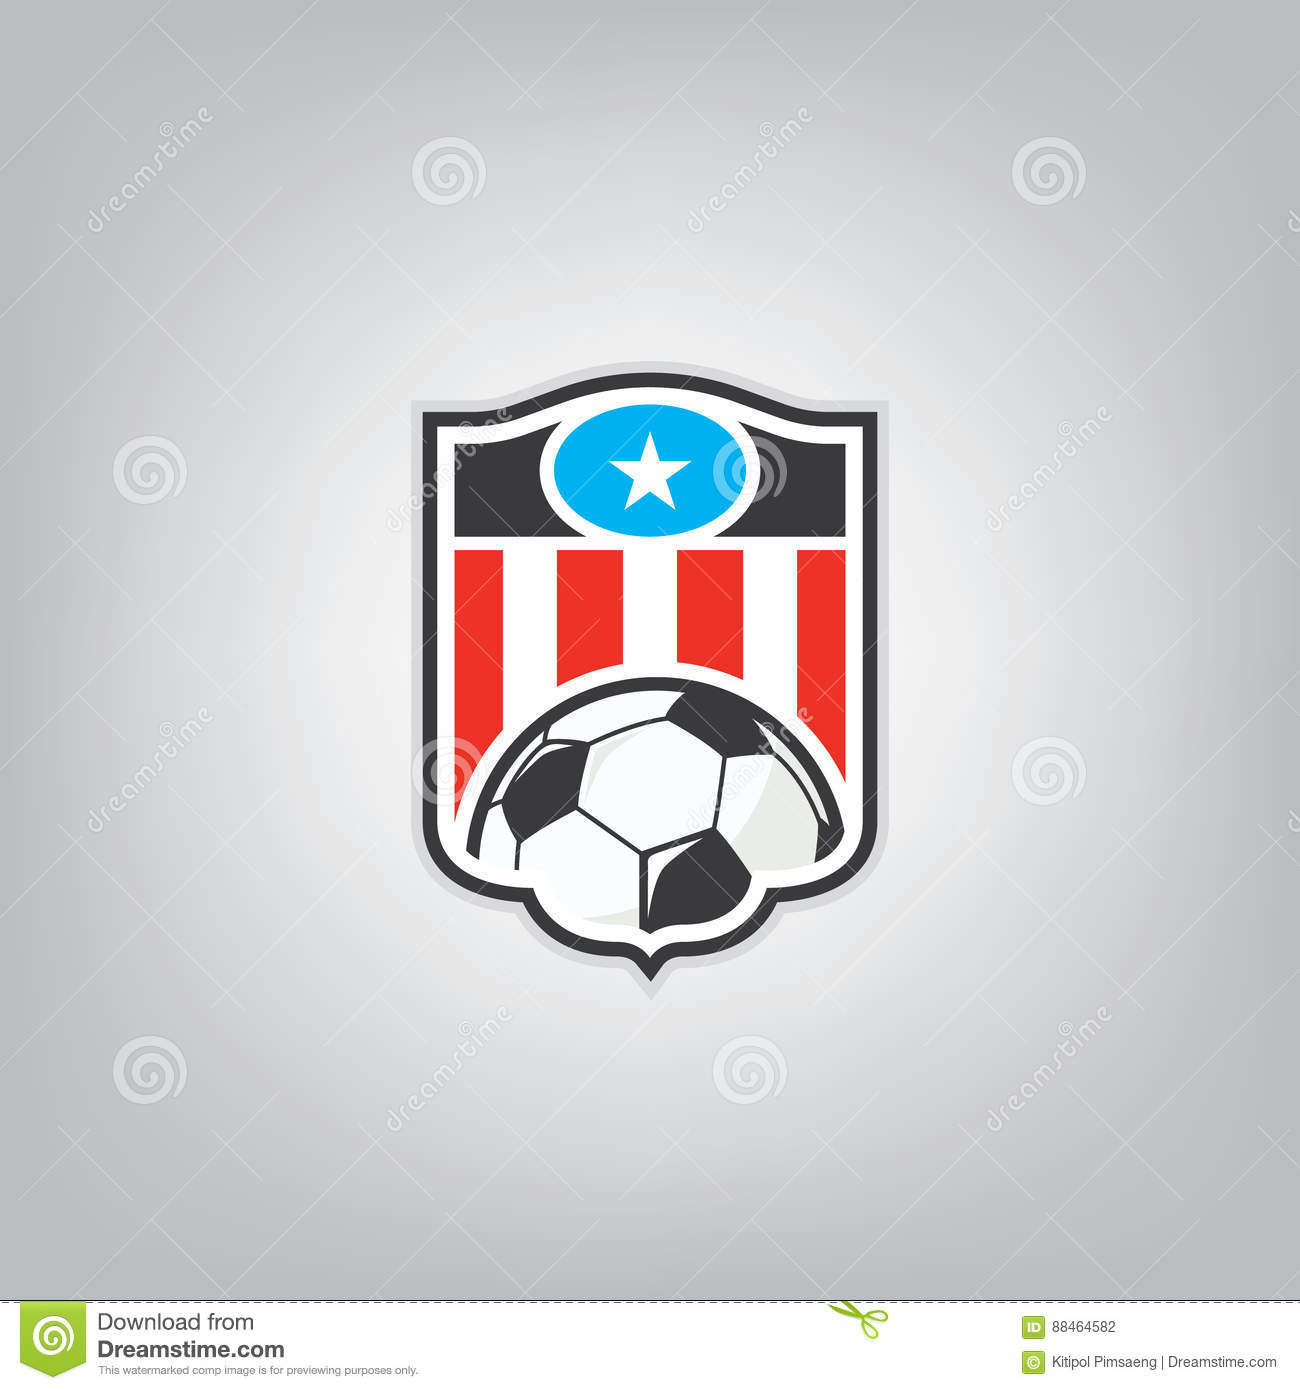 soccer logo design template stock vector illustration of crest